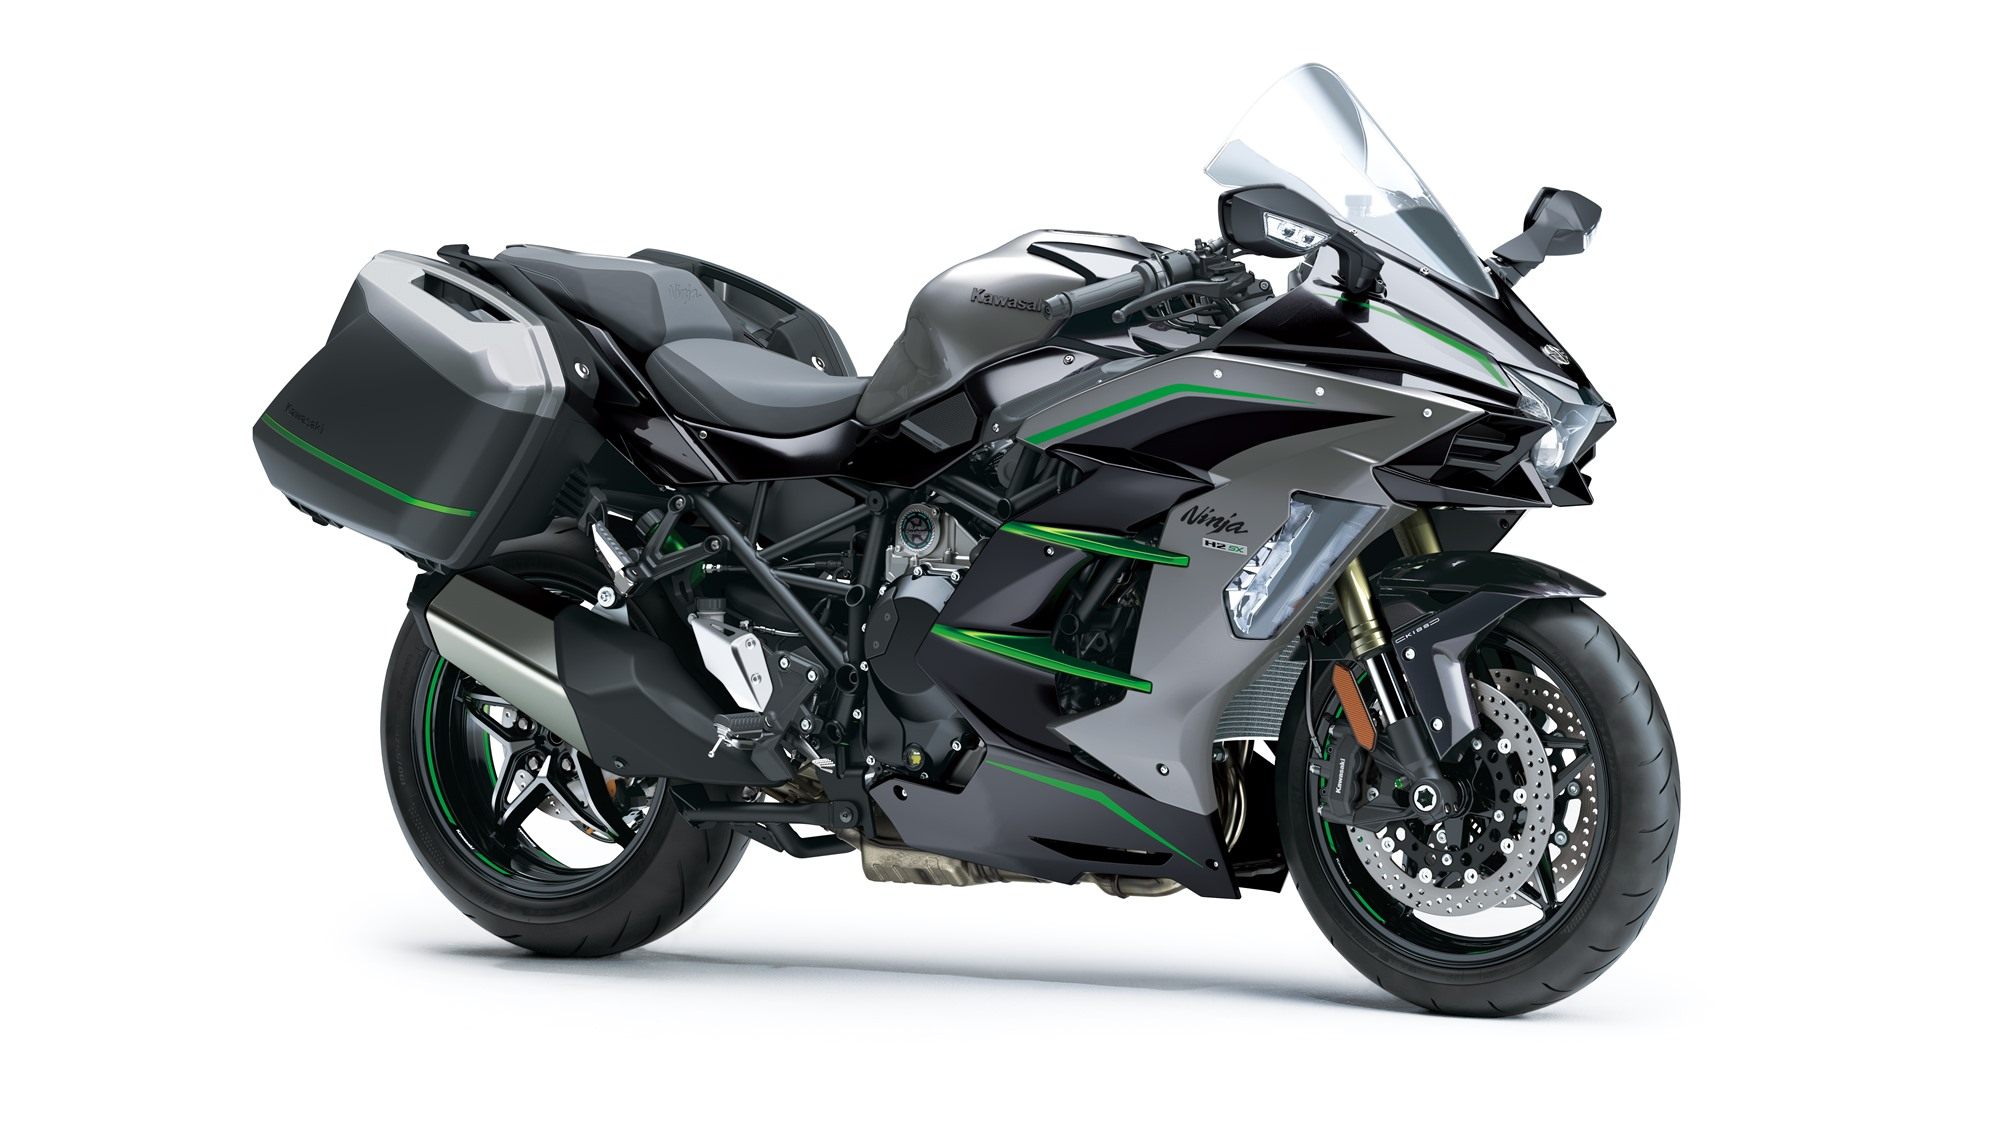 2020 Kawasaki Ninja H2 SX SE HD wallpaper